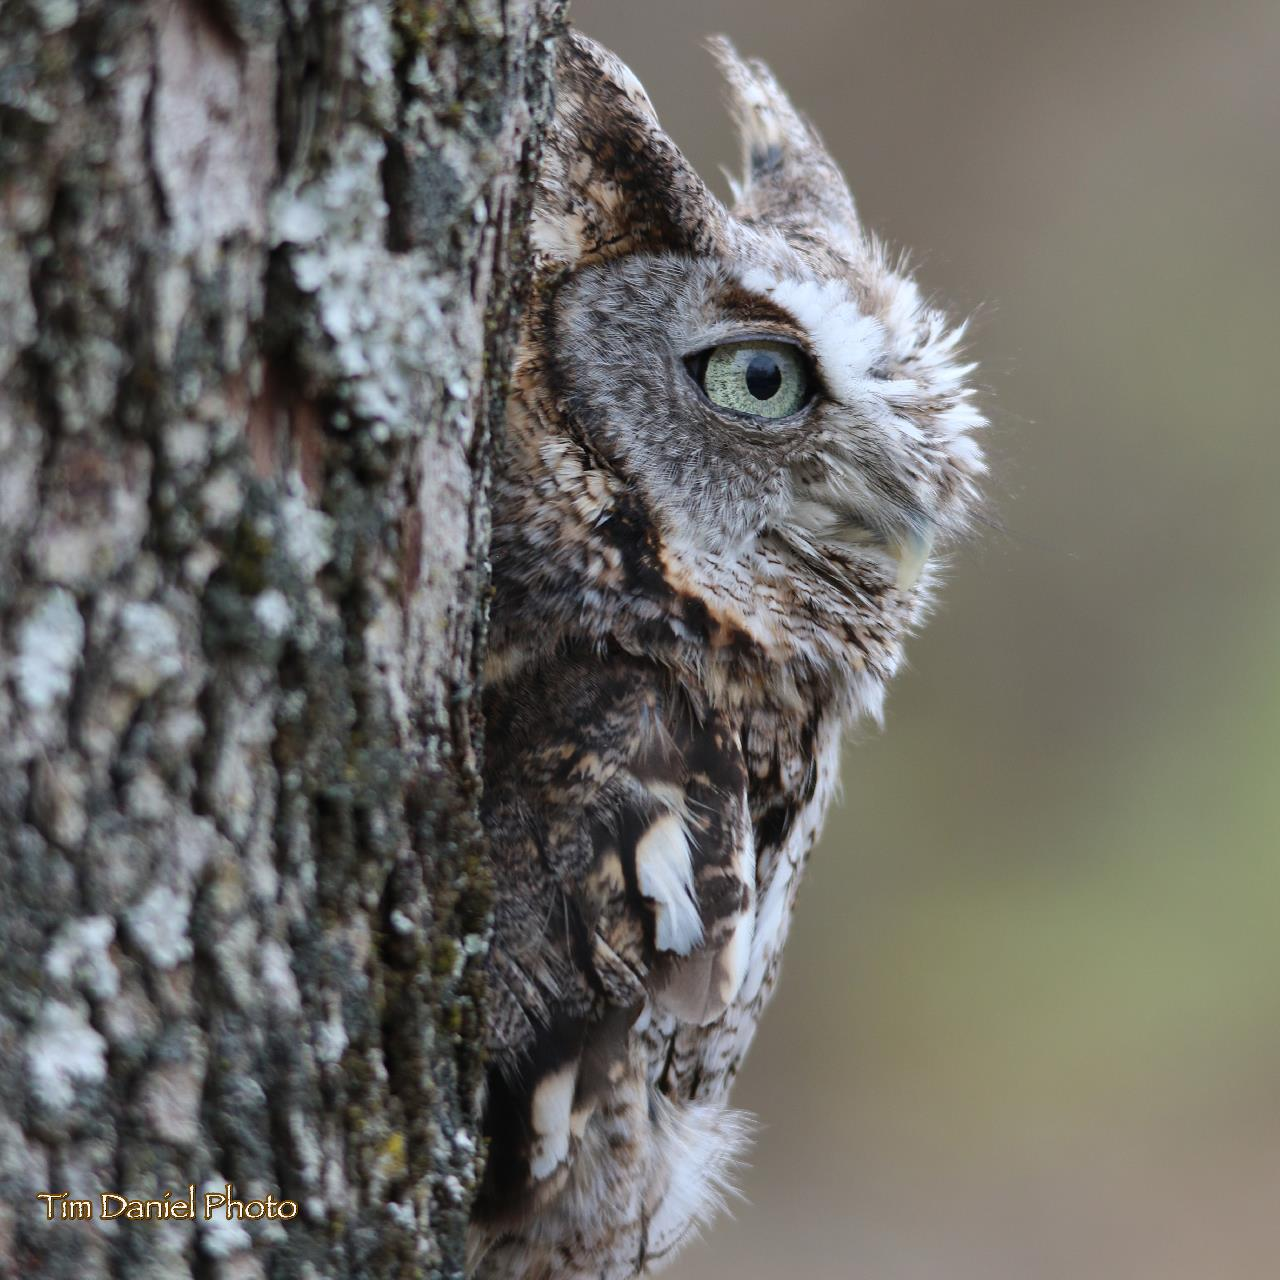 Eastern Screech Owl: Gray phase showing cryptic coloration